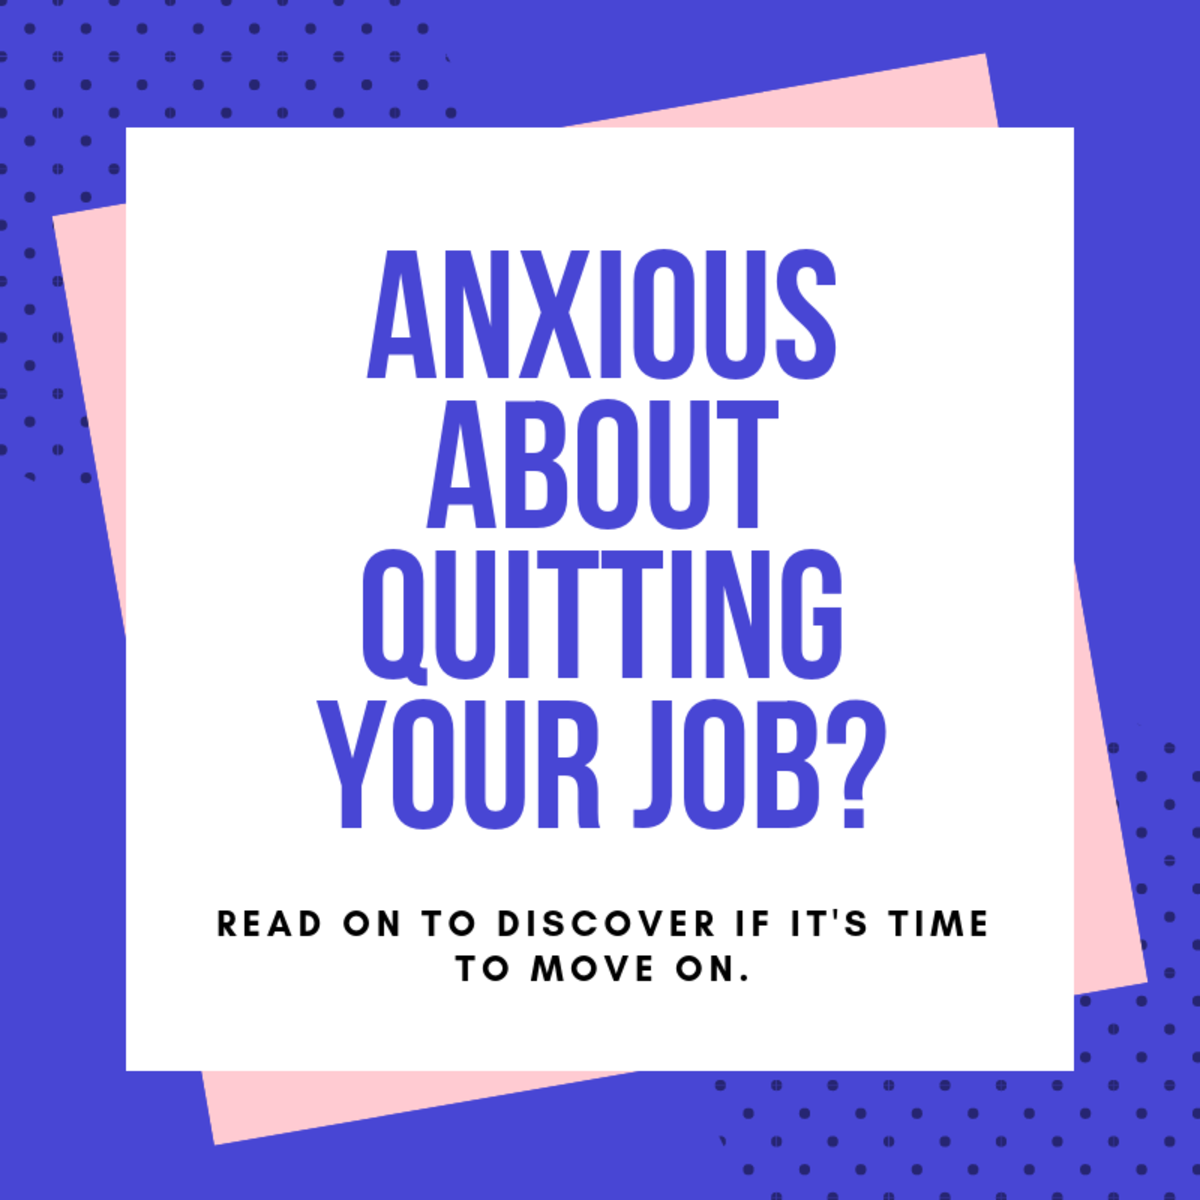 If your job is causing you an undue amount of stress, it could be time to think about moving on.